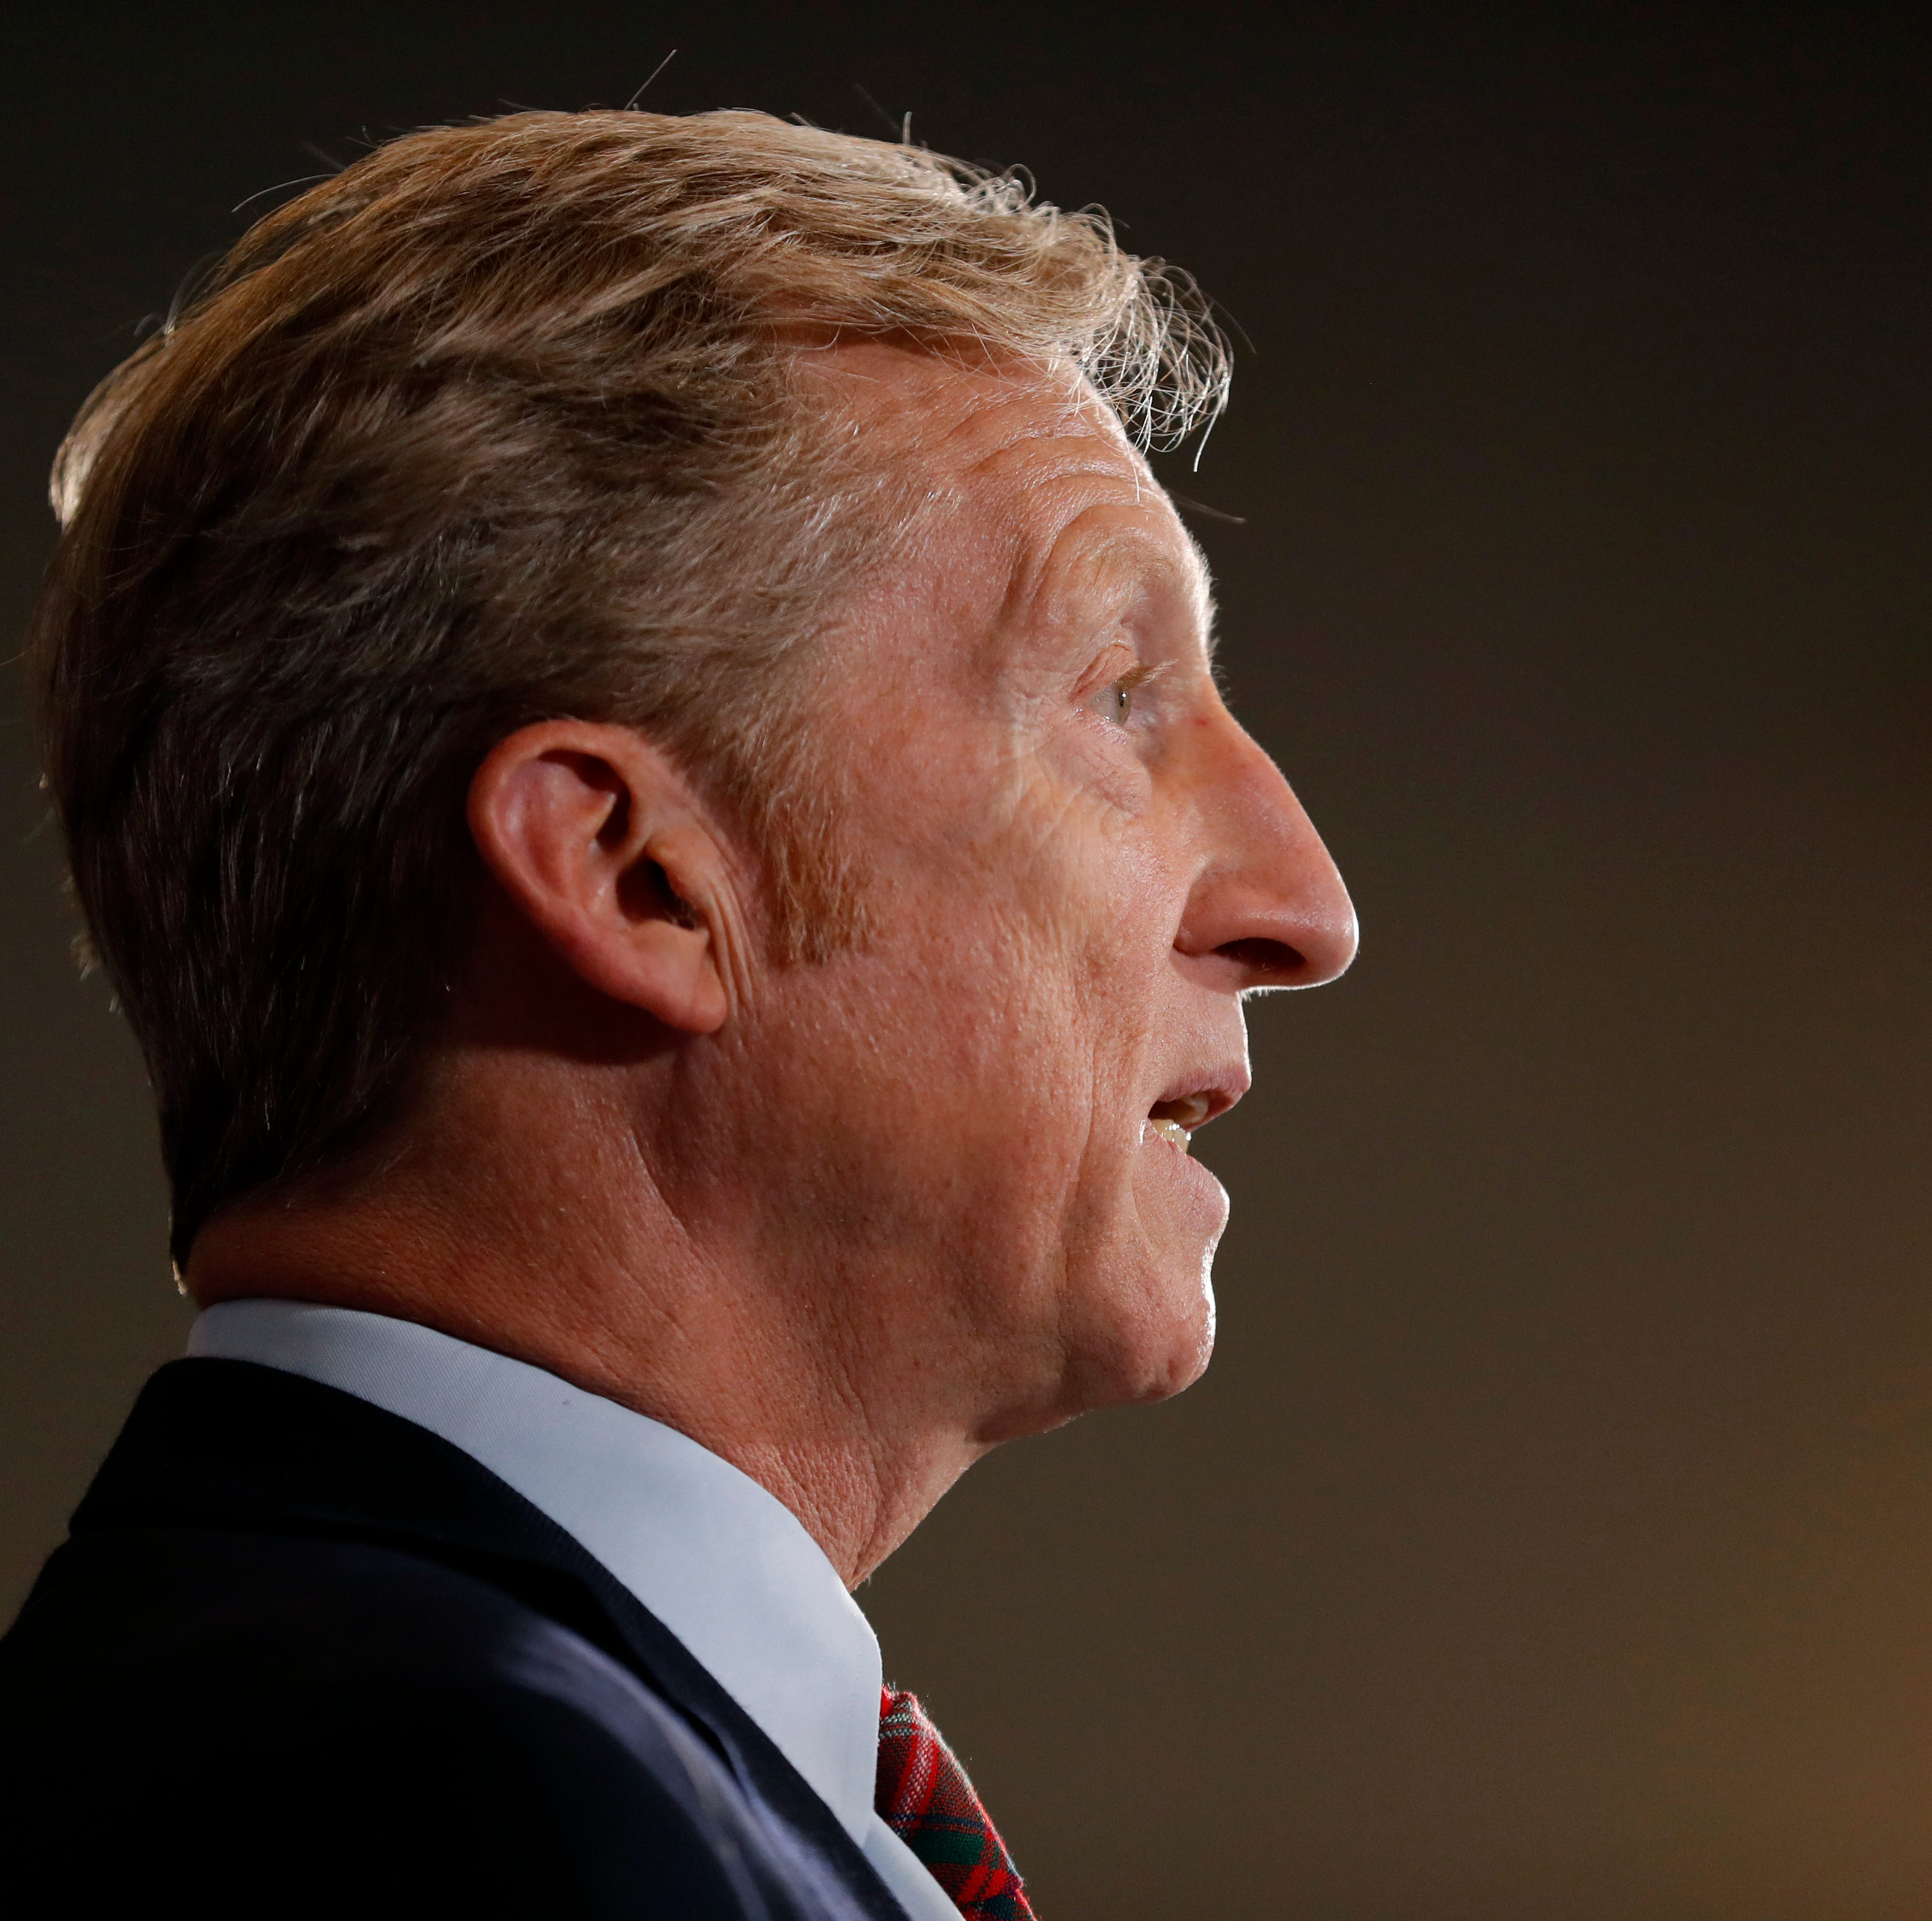 Billionaire activist Tom Steyer won't run for president, he announces in Des Moines